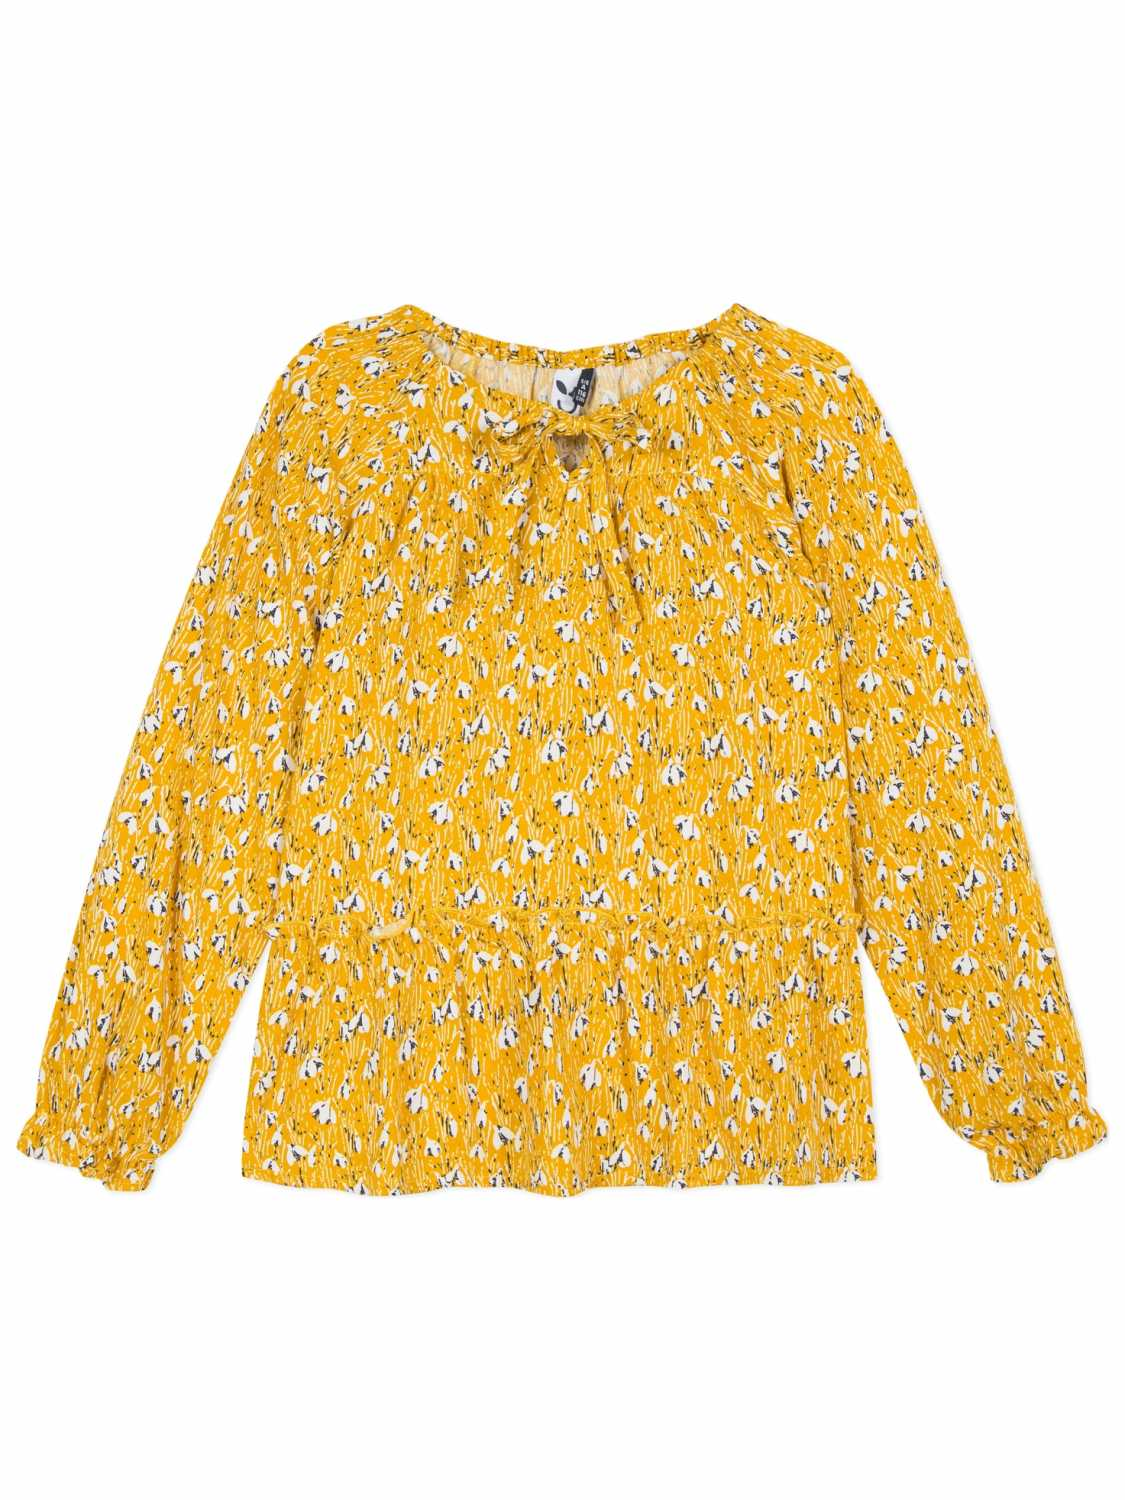 3pommes Shirt lange mouw - meisjes - All over print -